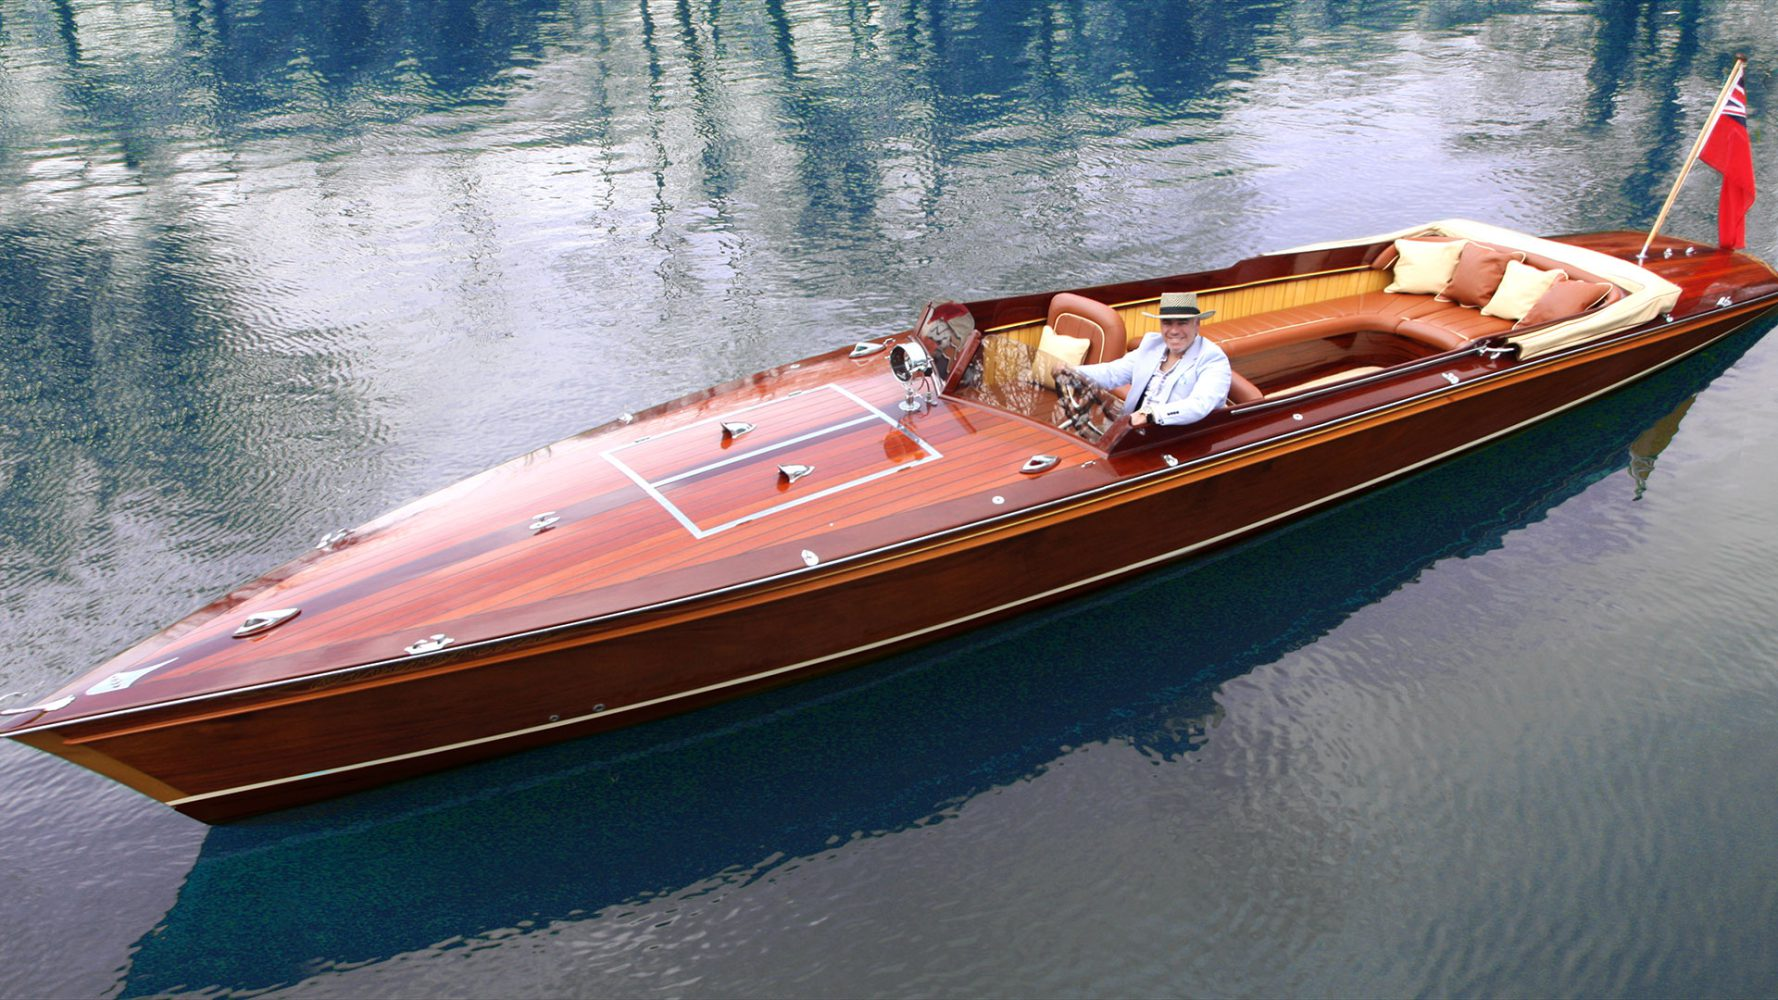 Designed by renowned automotive designer Frank Stephenson, a custom 31 electric. DC powered. Not fast and looks expensive. Definitely not a backyard job.Beautiful though.